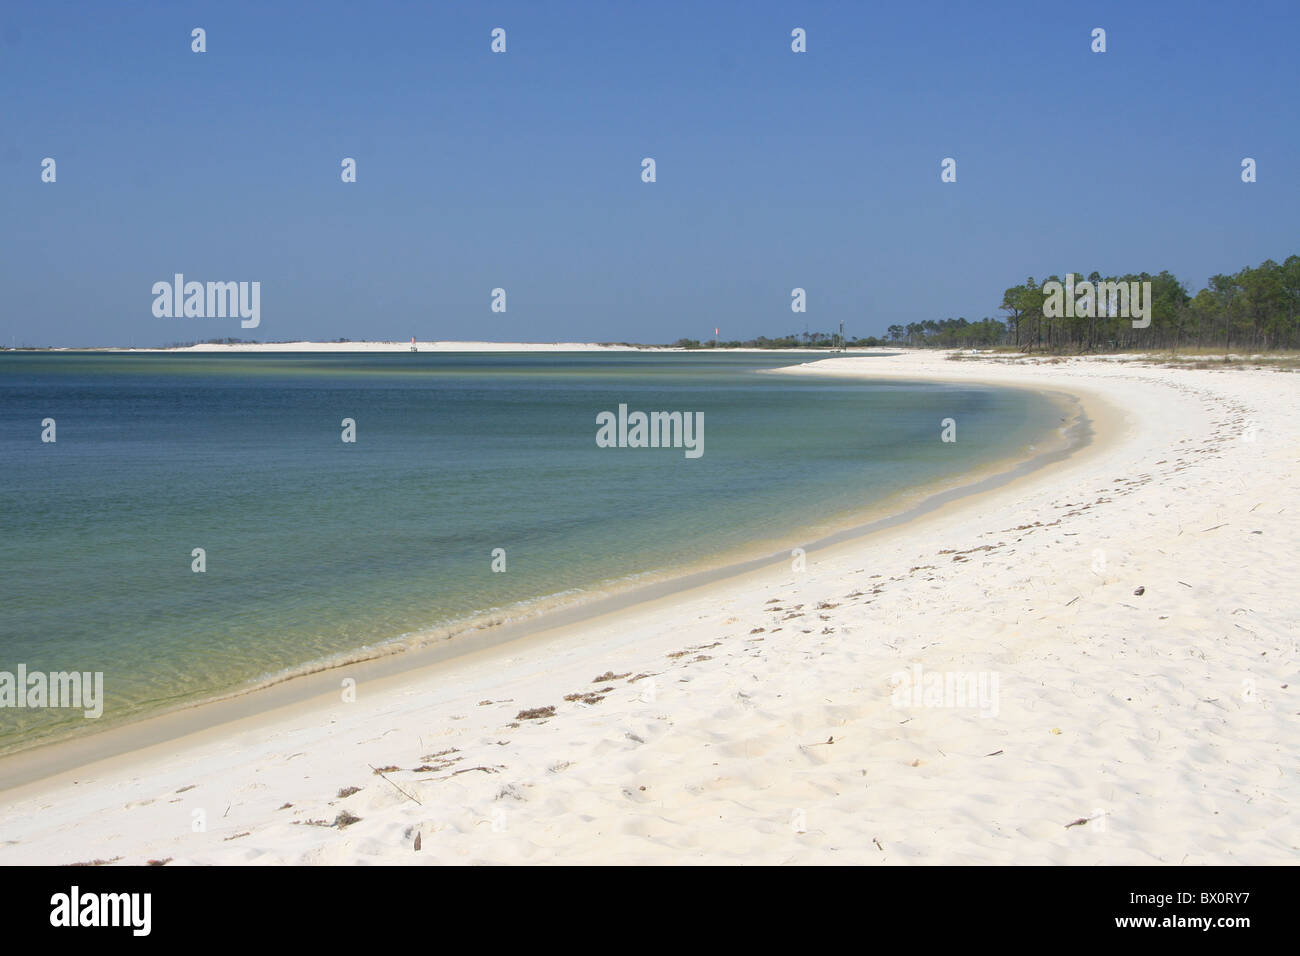 strand of sugar white sand and aqua water on NAS Pensacola Navy base blue sky - Stock Image